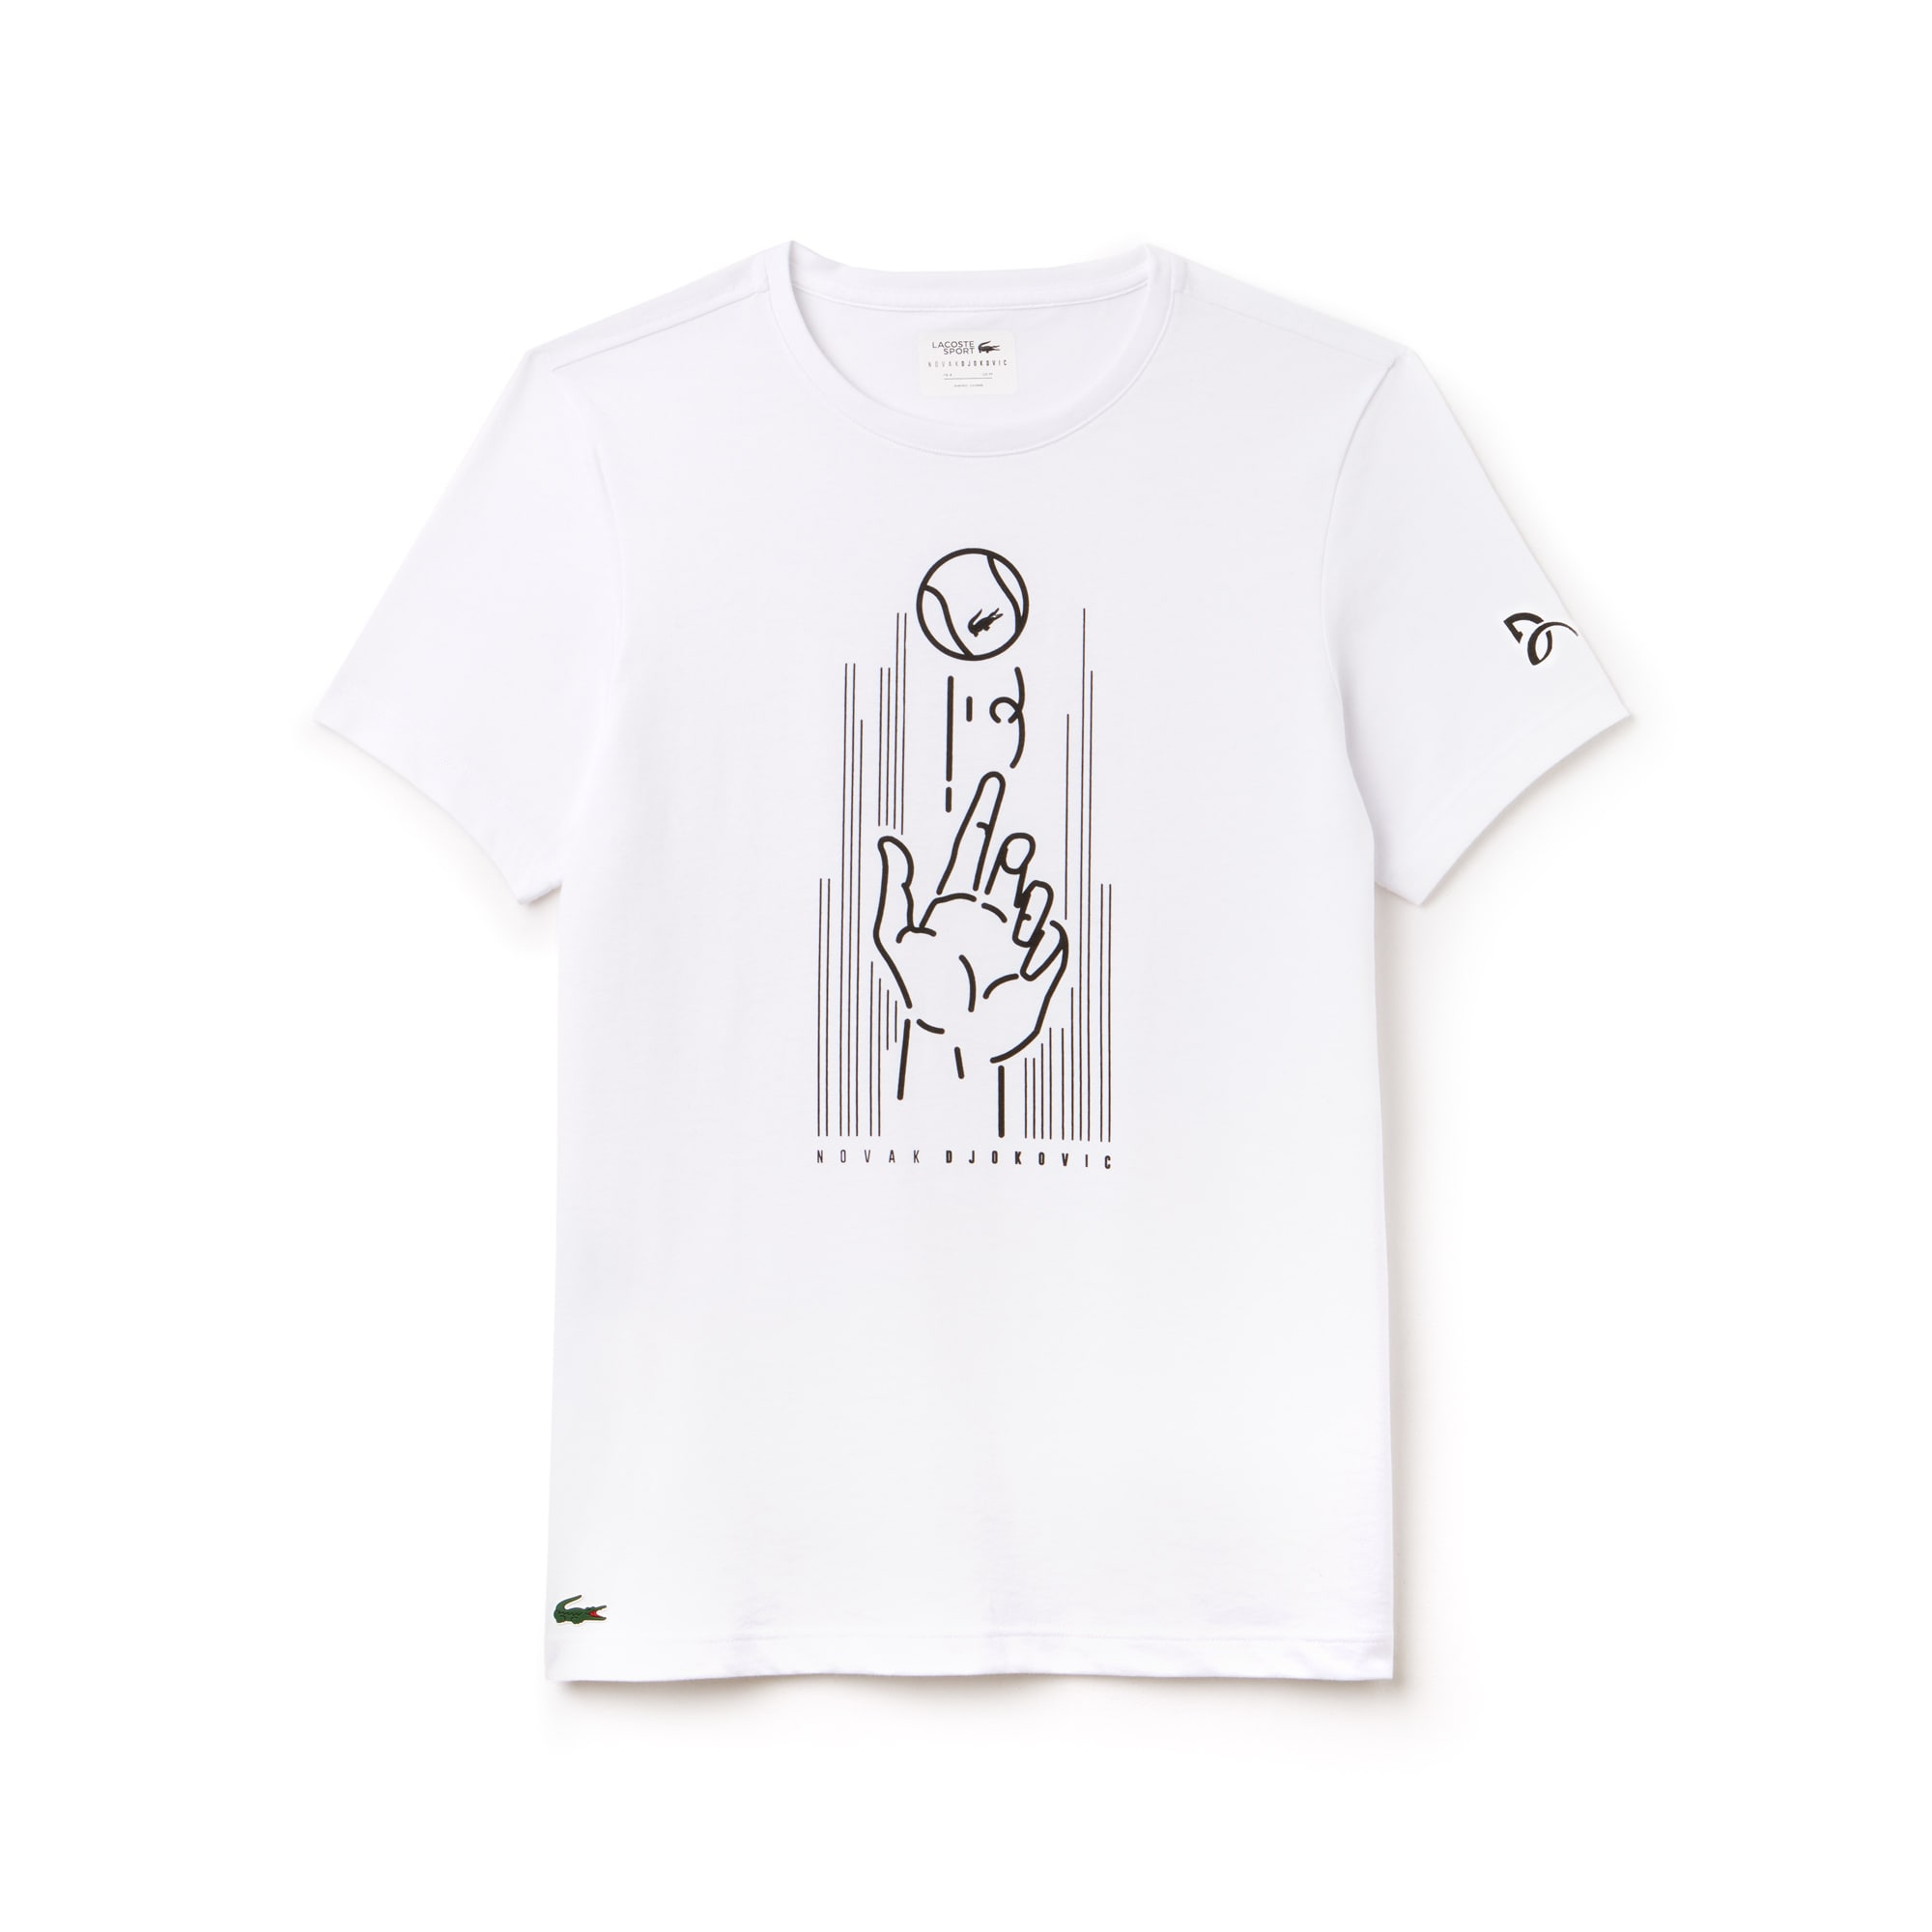 Camiseta De Hombre Lacoste SPORT Novak Djokovic Support With Style -Off Court Collection En Tejido De Punto Técnico Estampado Con Cuello Redondo